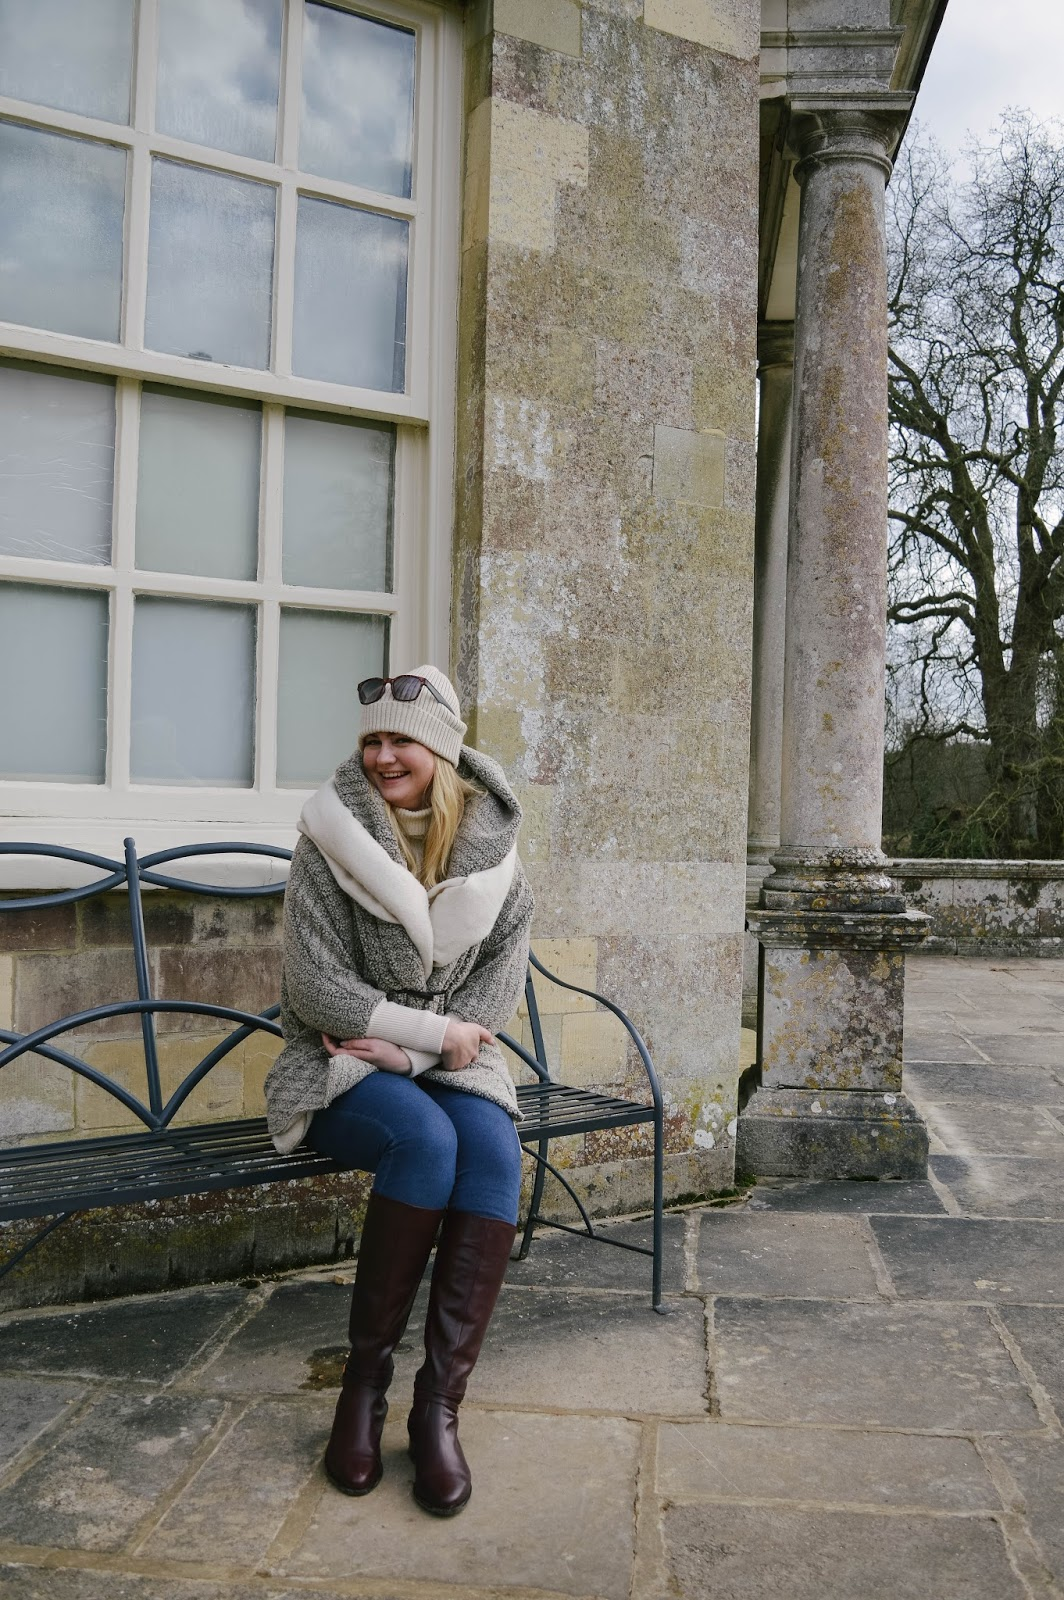 Visiting Mottisfont in Hampshire, Hampshire lifestyle blog, UK lifestyle blog